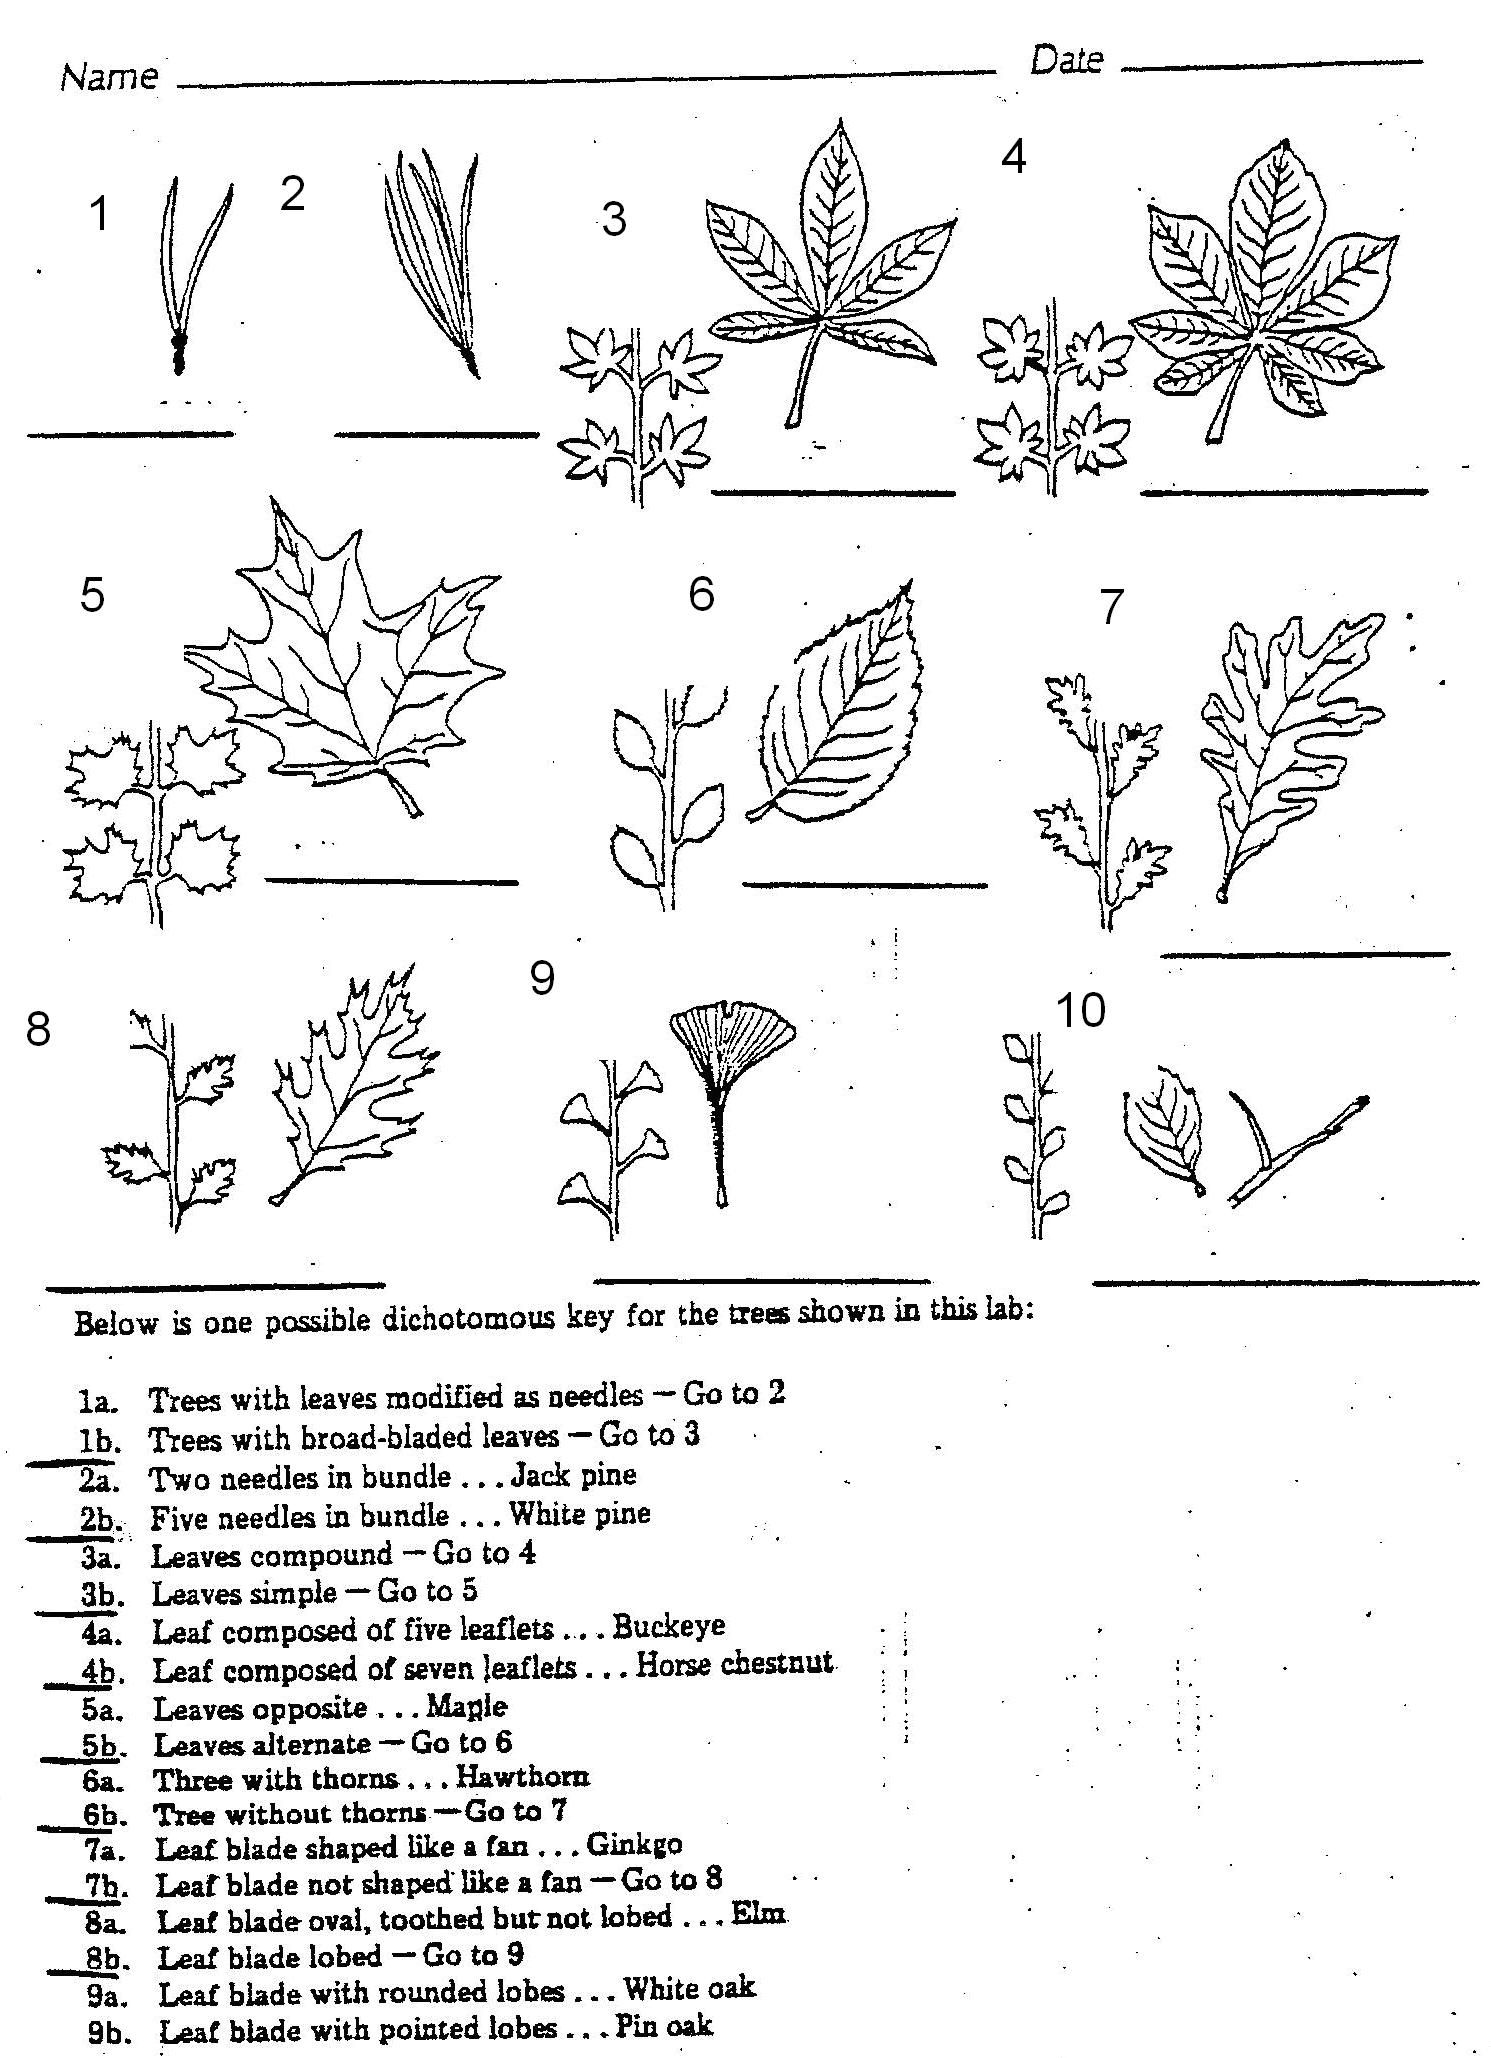 worksheet Parts Of A Leaf Worksheet plants 7 leaf tree id key review dichotomous keys activity activity